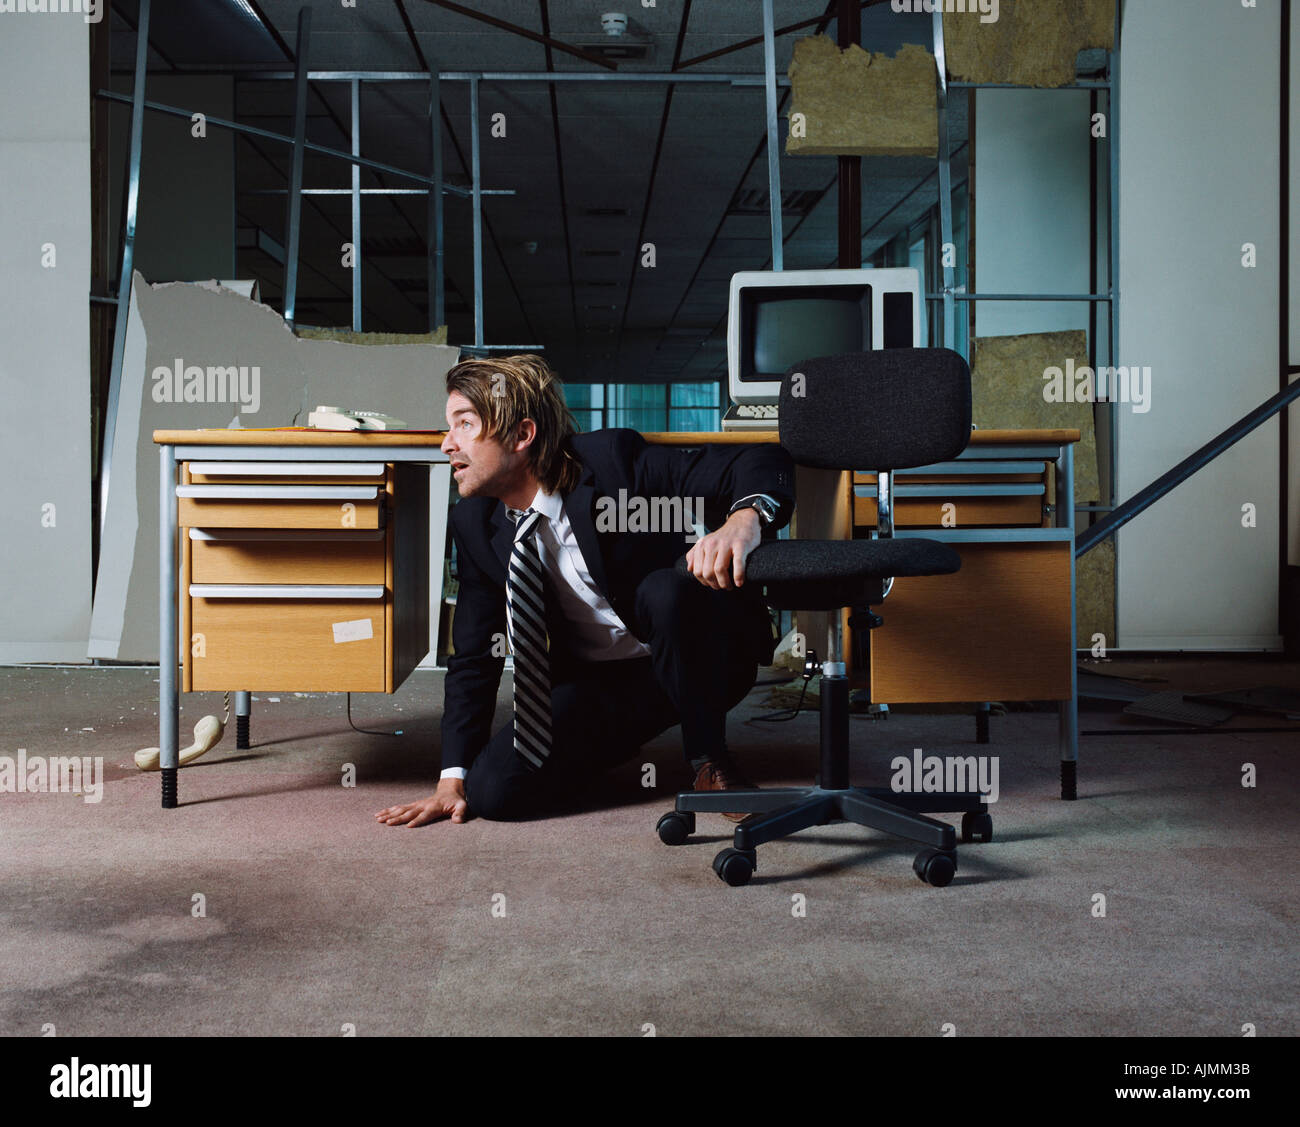 Businessman emerging from under desk - Stock Image